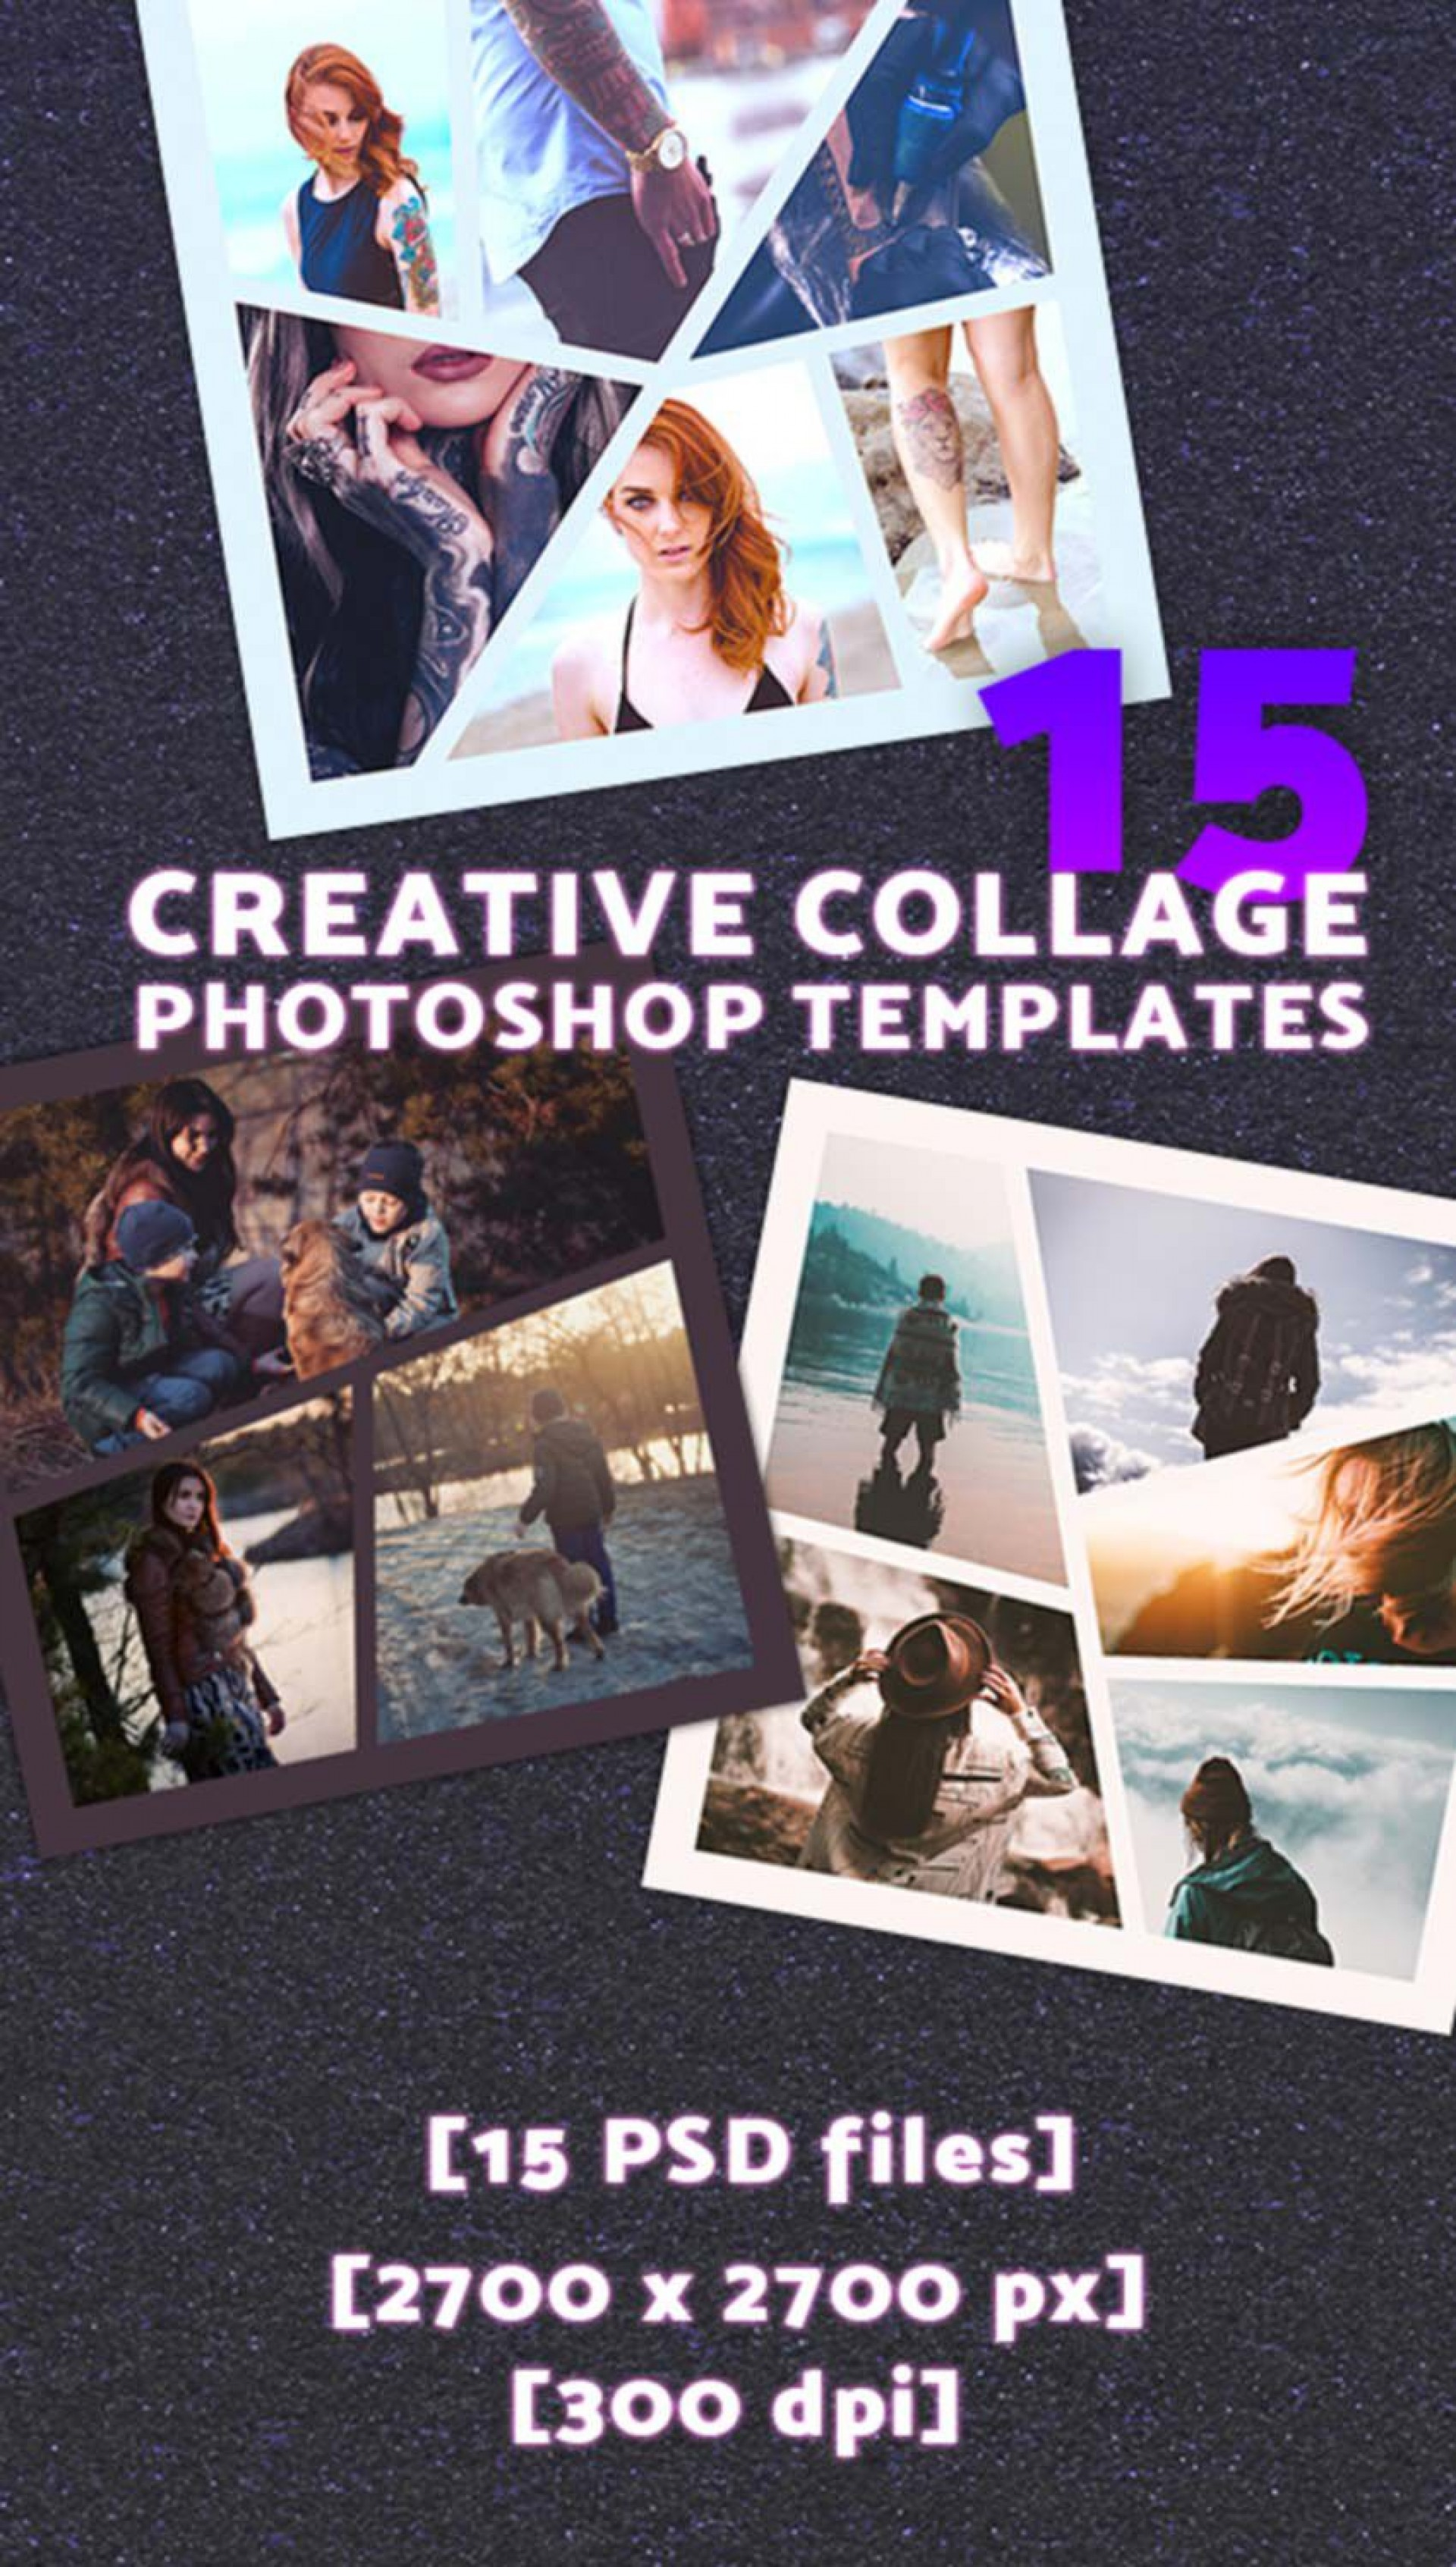 010 Unusual Free Photoshop Collage Template Design  Templates Psd Download Photo For Element1920